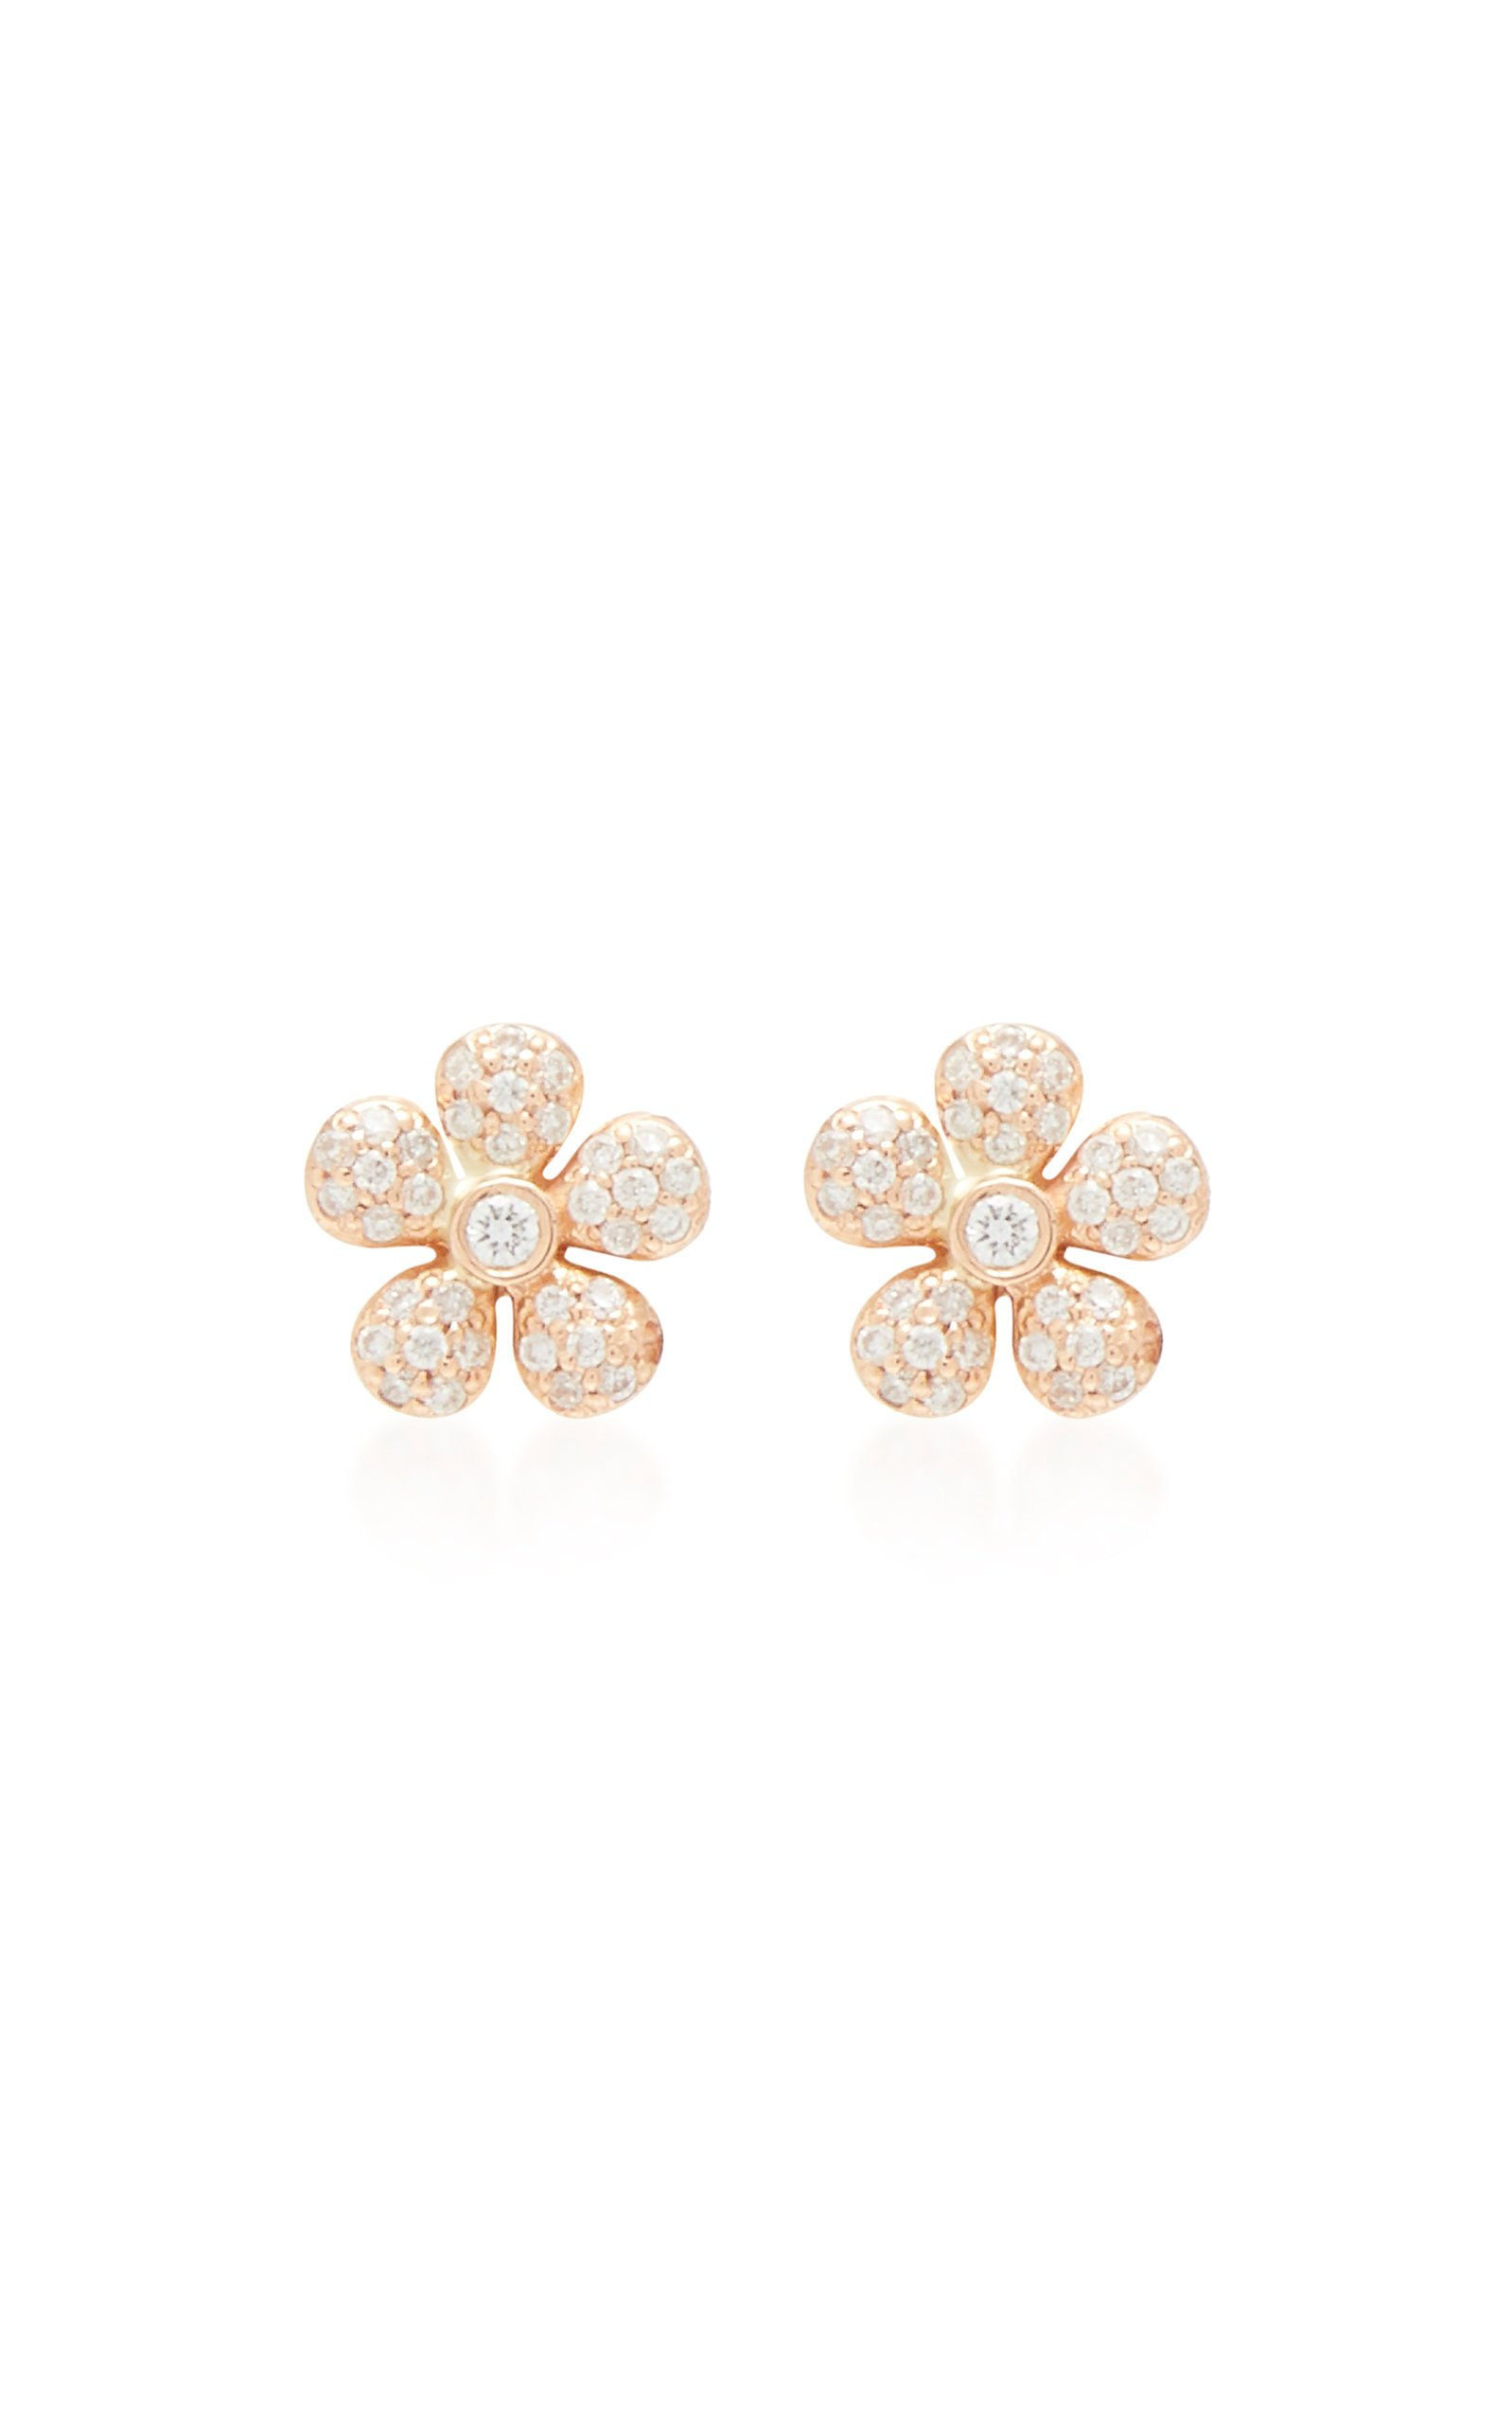 Colette Jewelry 18K Gold and Diamond Earrings